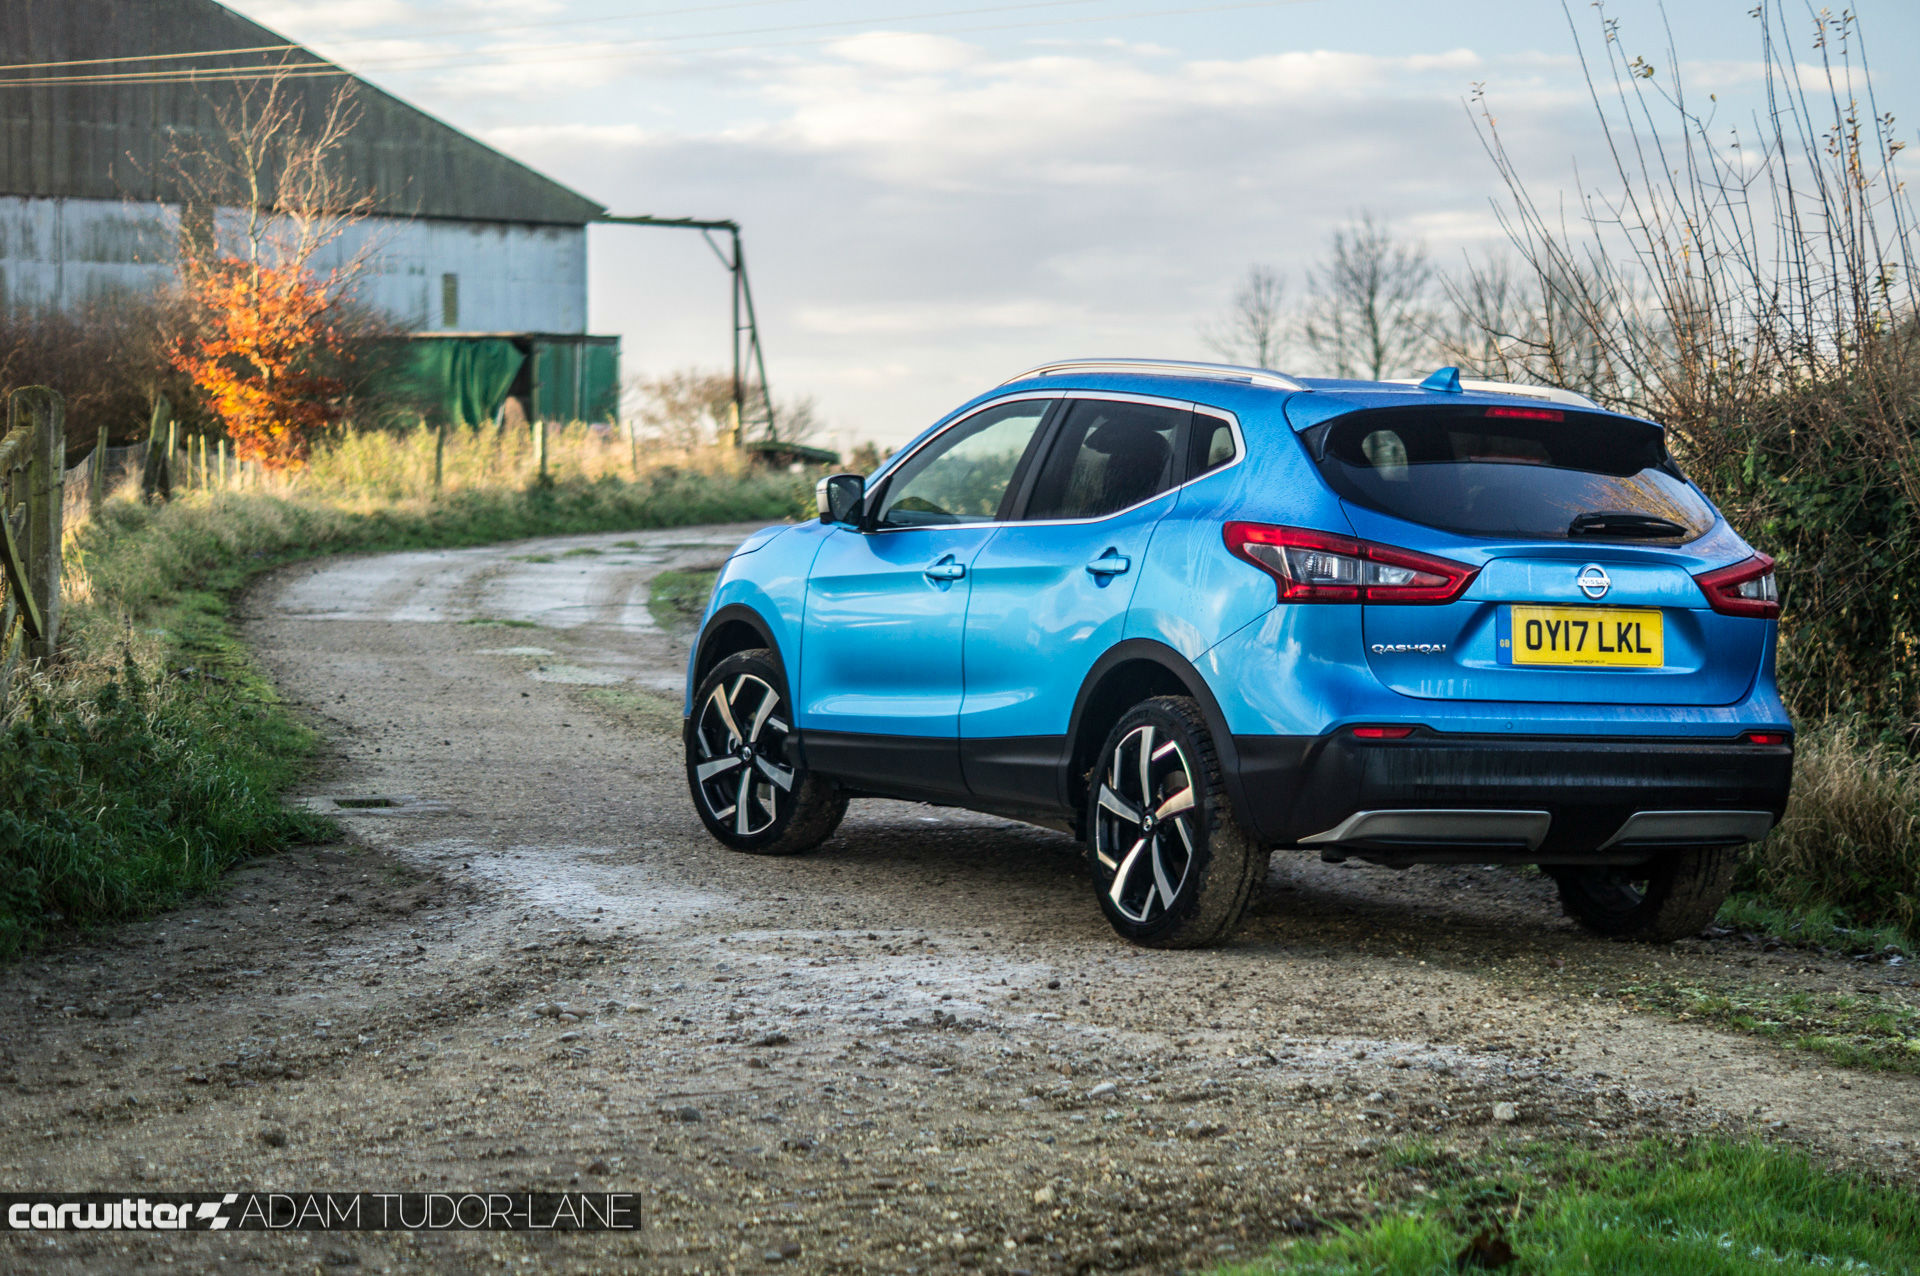 2018 Nissan Qashqai Review Rear Angle carwitter - Top 10 Best Selling Cars in Ireland 2020 - 2018 Nissan Qashqai Review - Rear Angle - carwitter